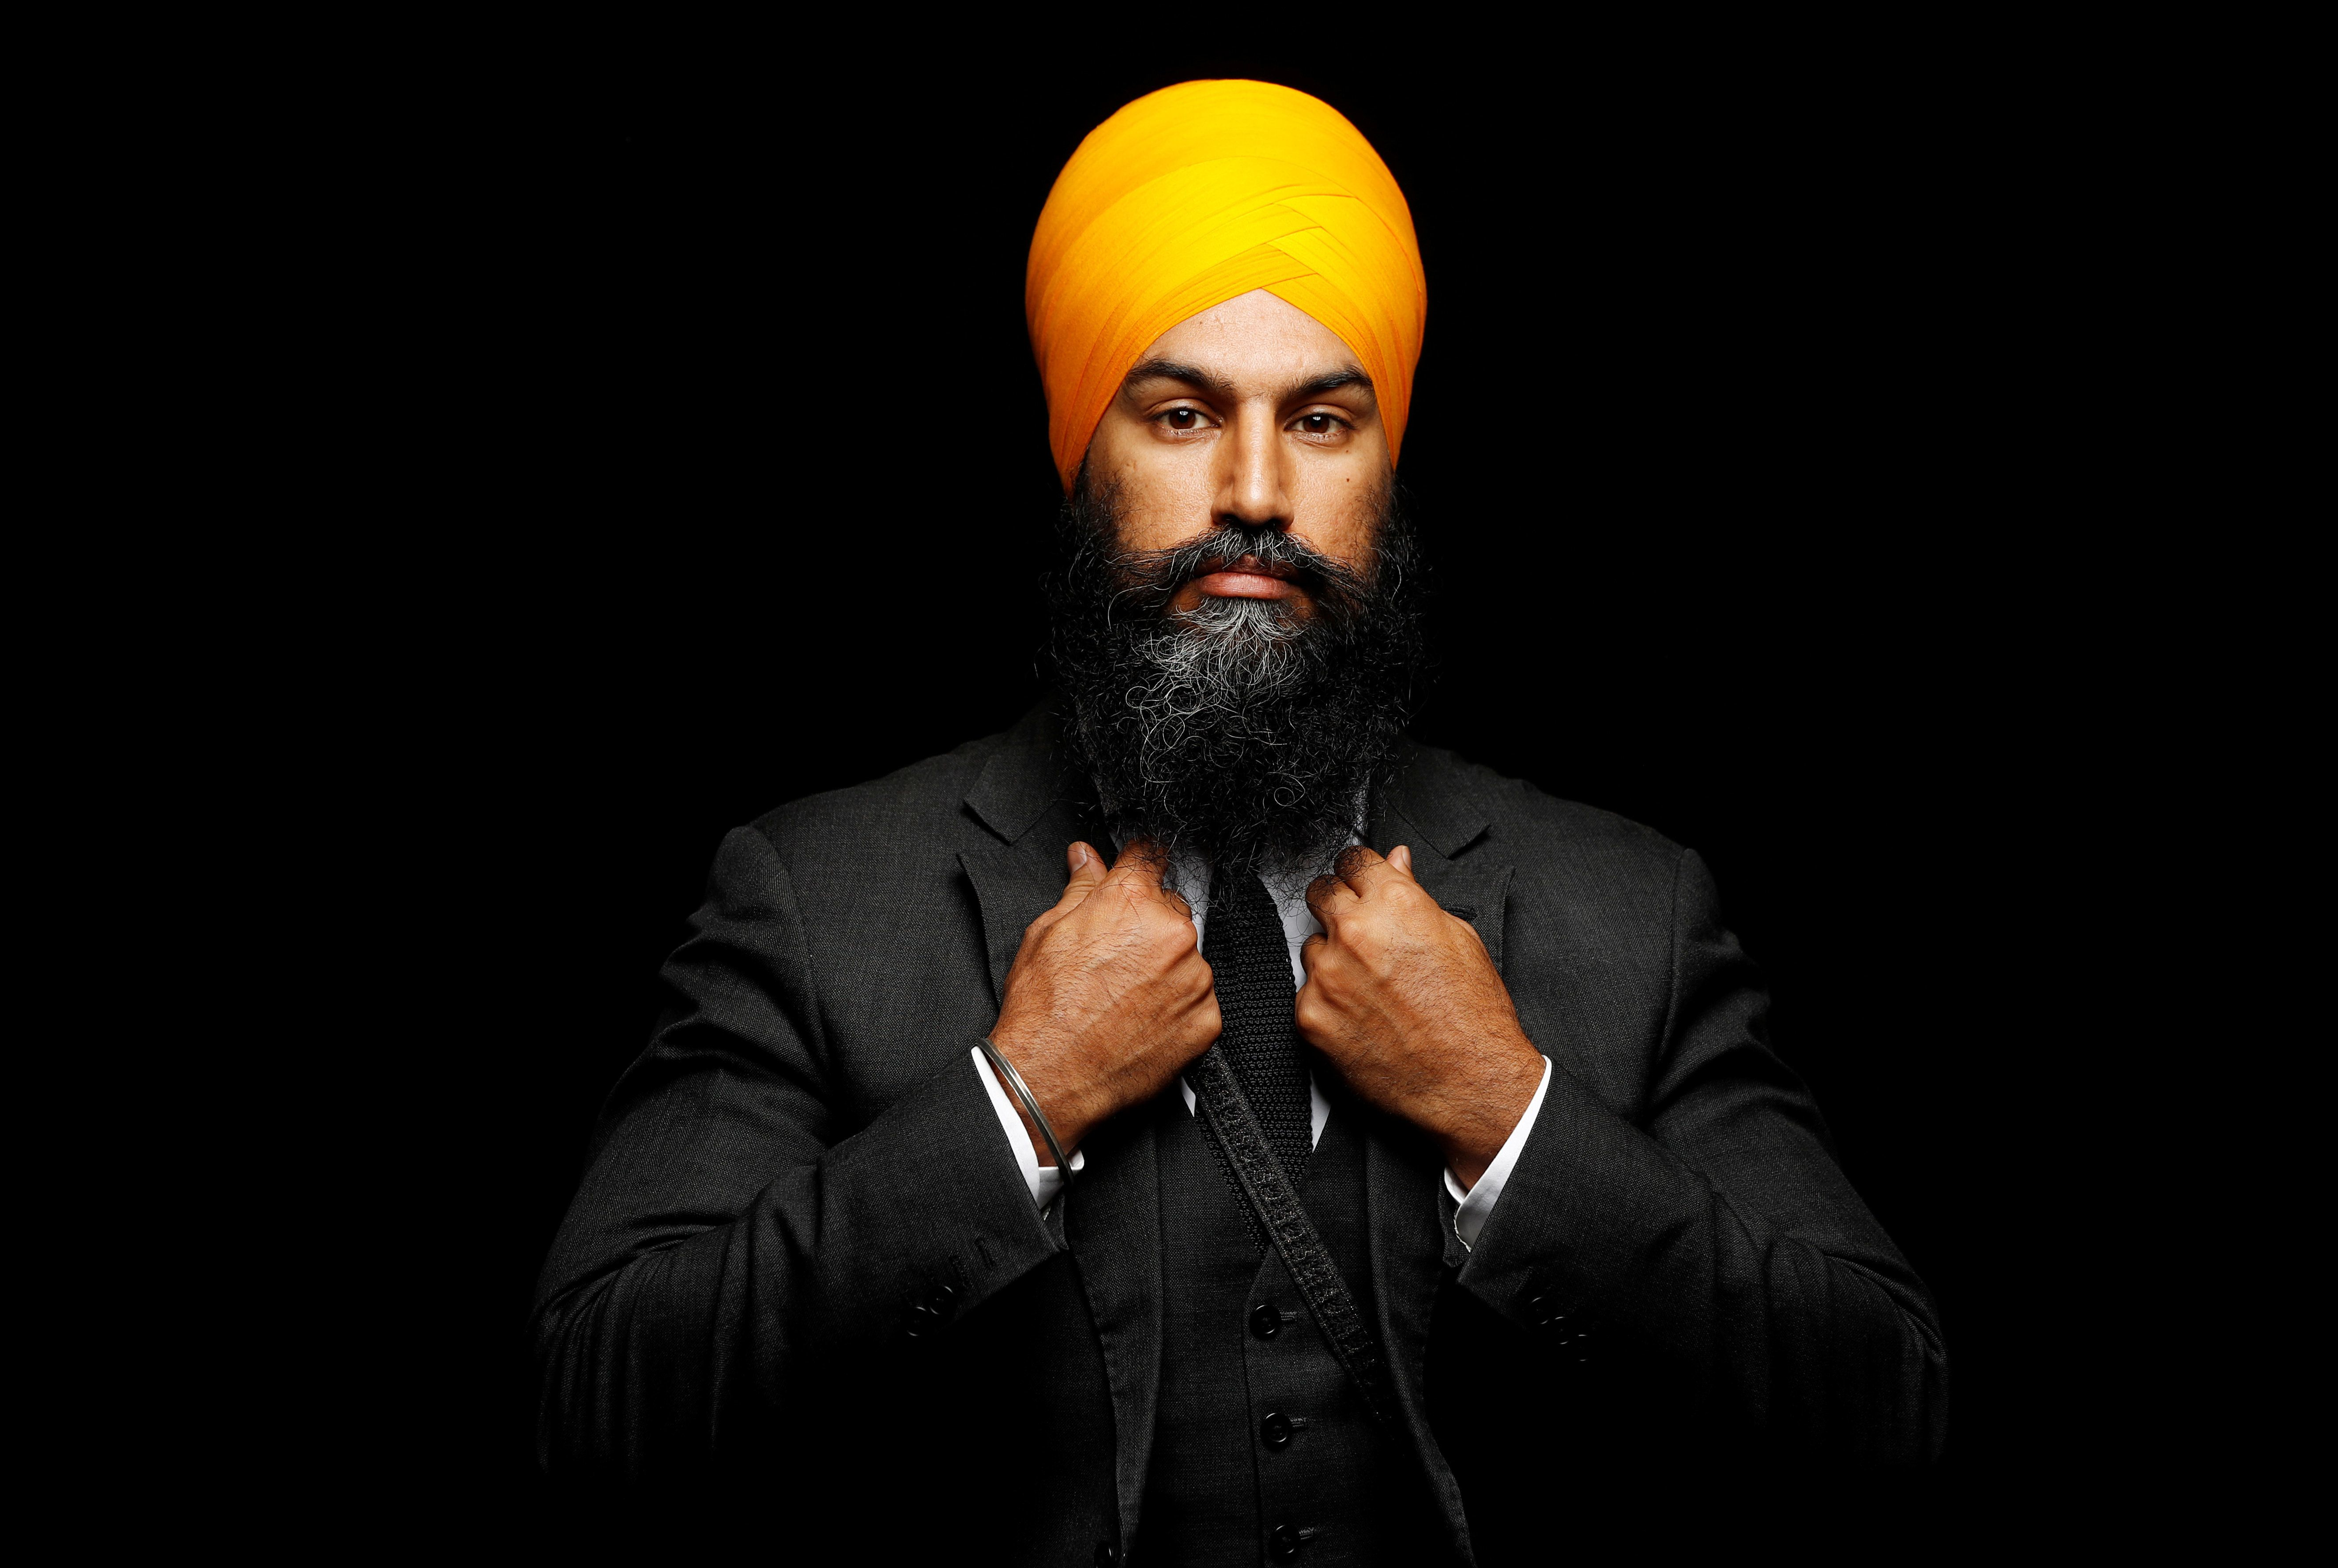 A Sikh Politician Just Became The First Person Of Colour To Lead A Major Canadian Political